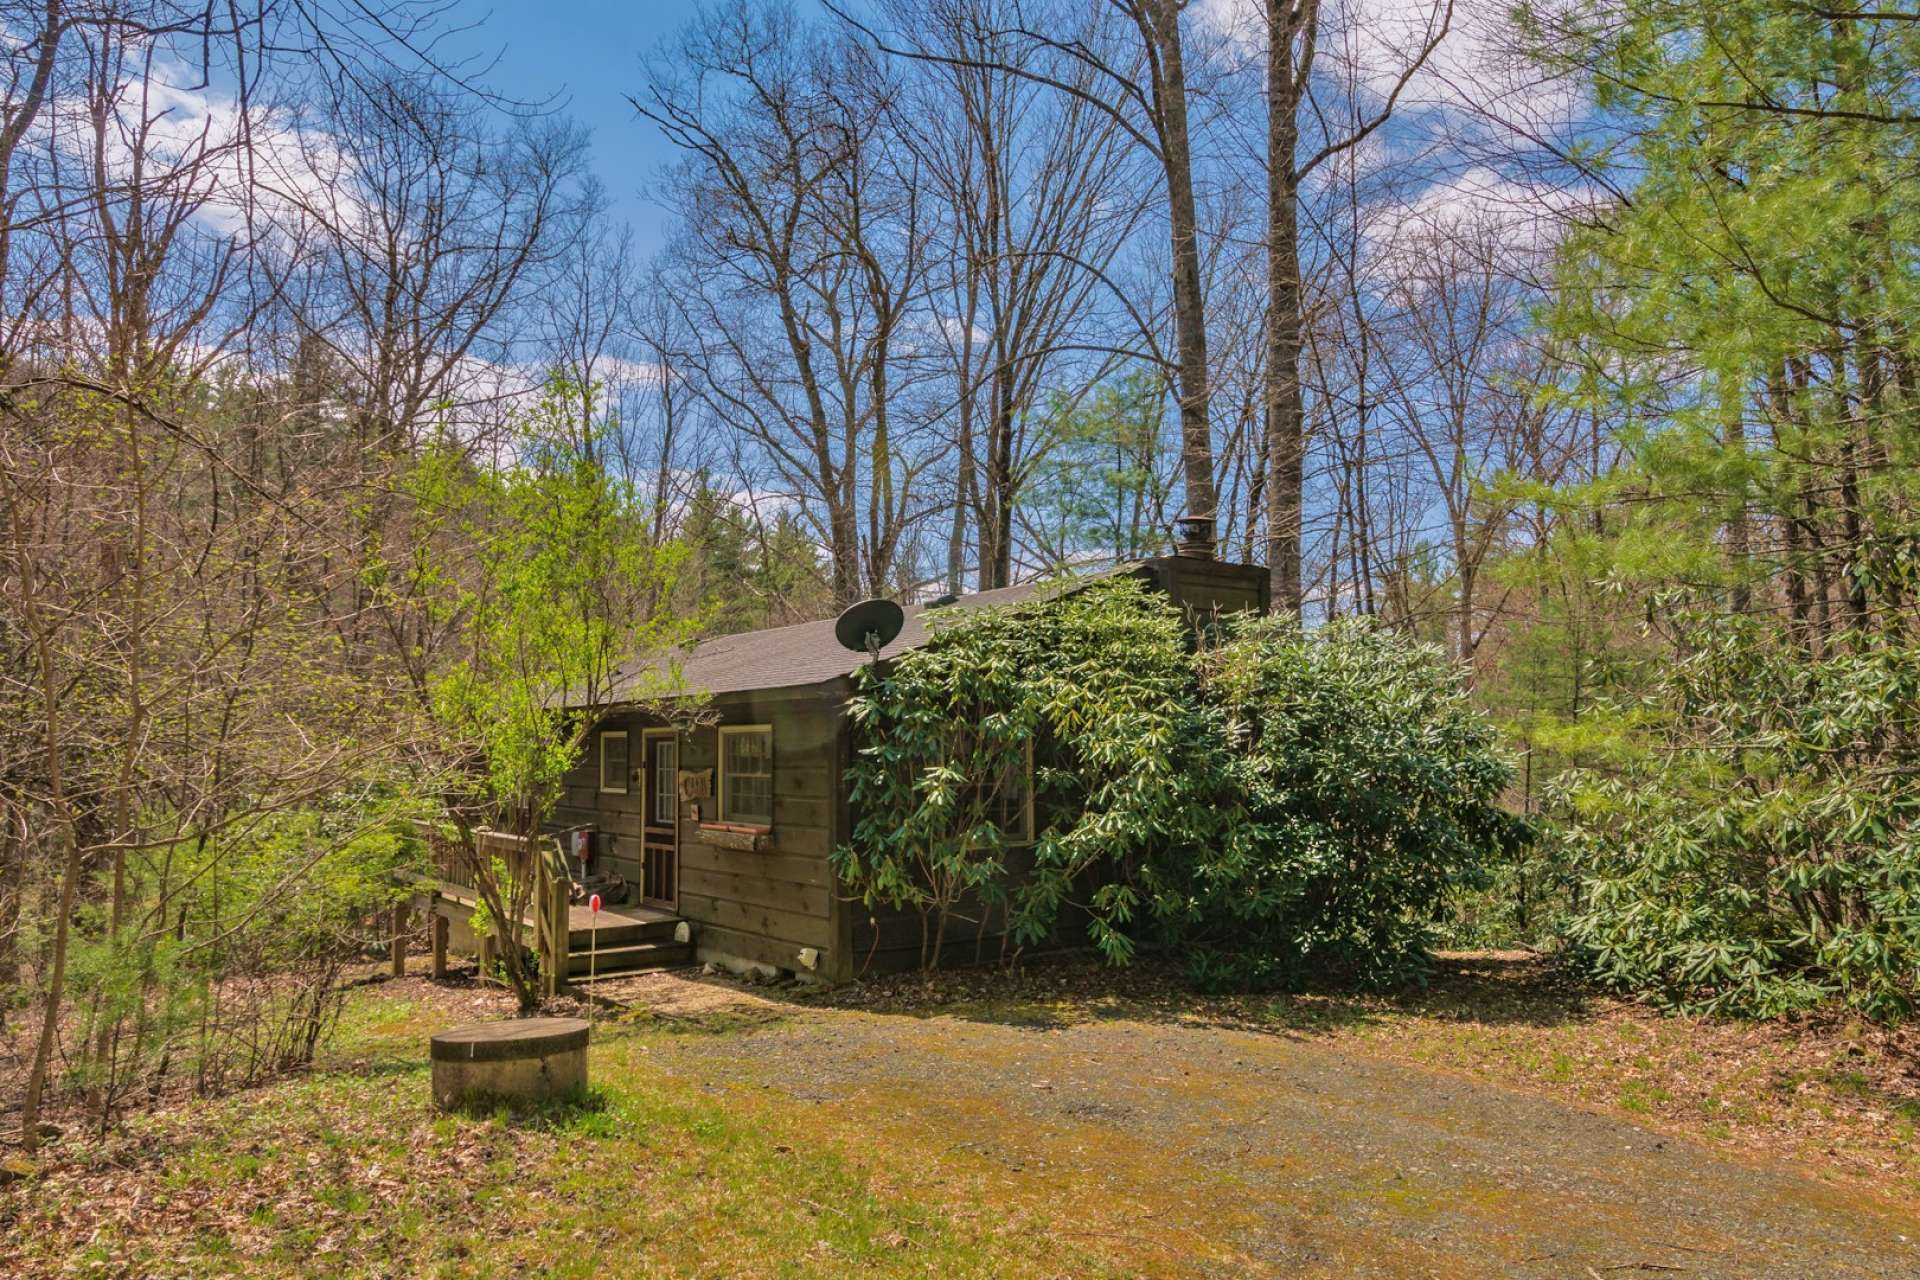 Offered at only $174,900, this sweet mountain cabin is perfect for your mountain retreat or vacation rental investment.  Call today for additional information on listing C143.